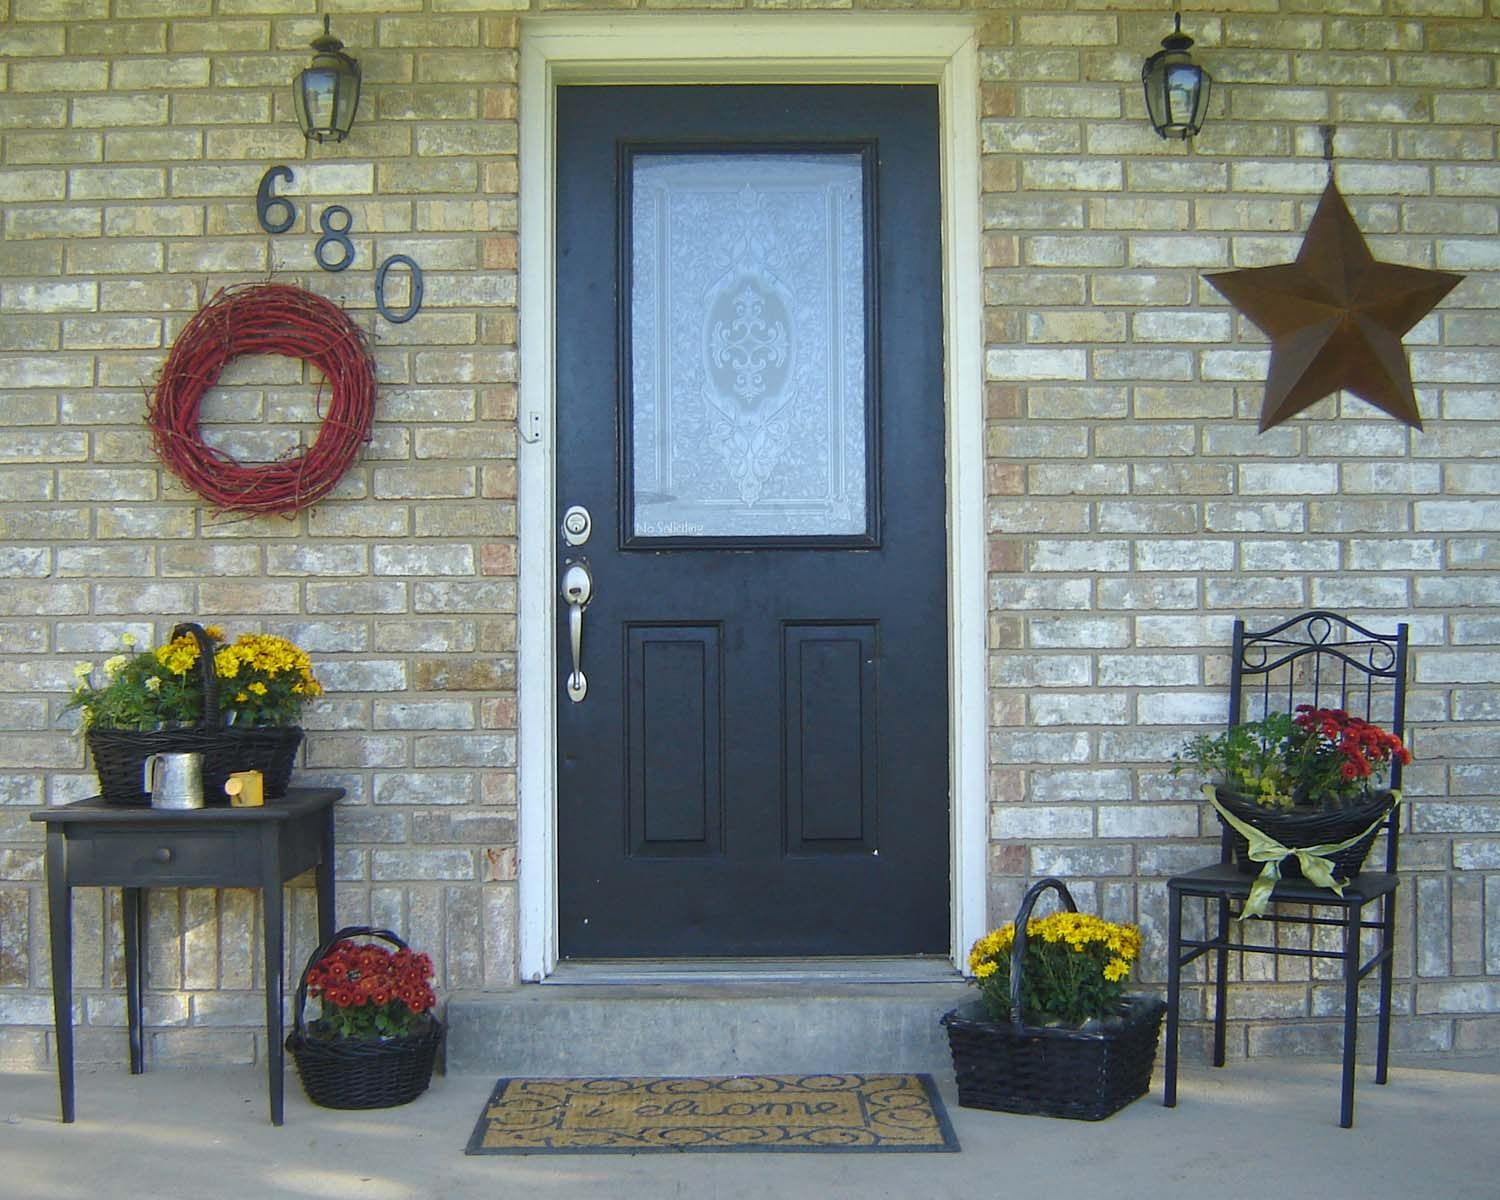 Porch decorating ideas home updates pinterest porch for Tiny front porch decorating ideas